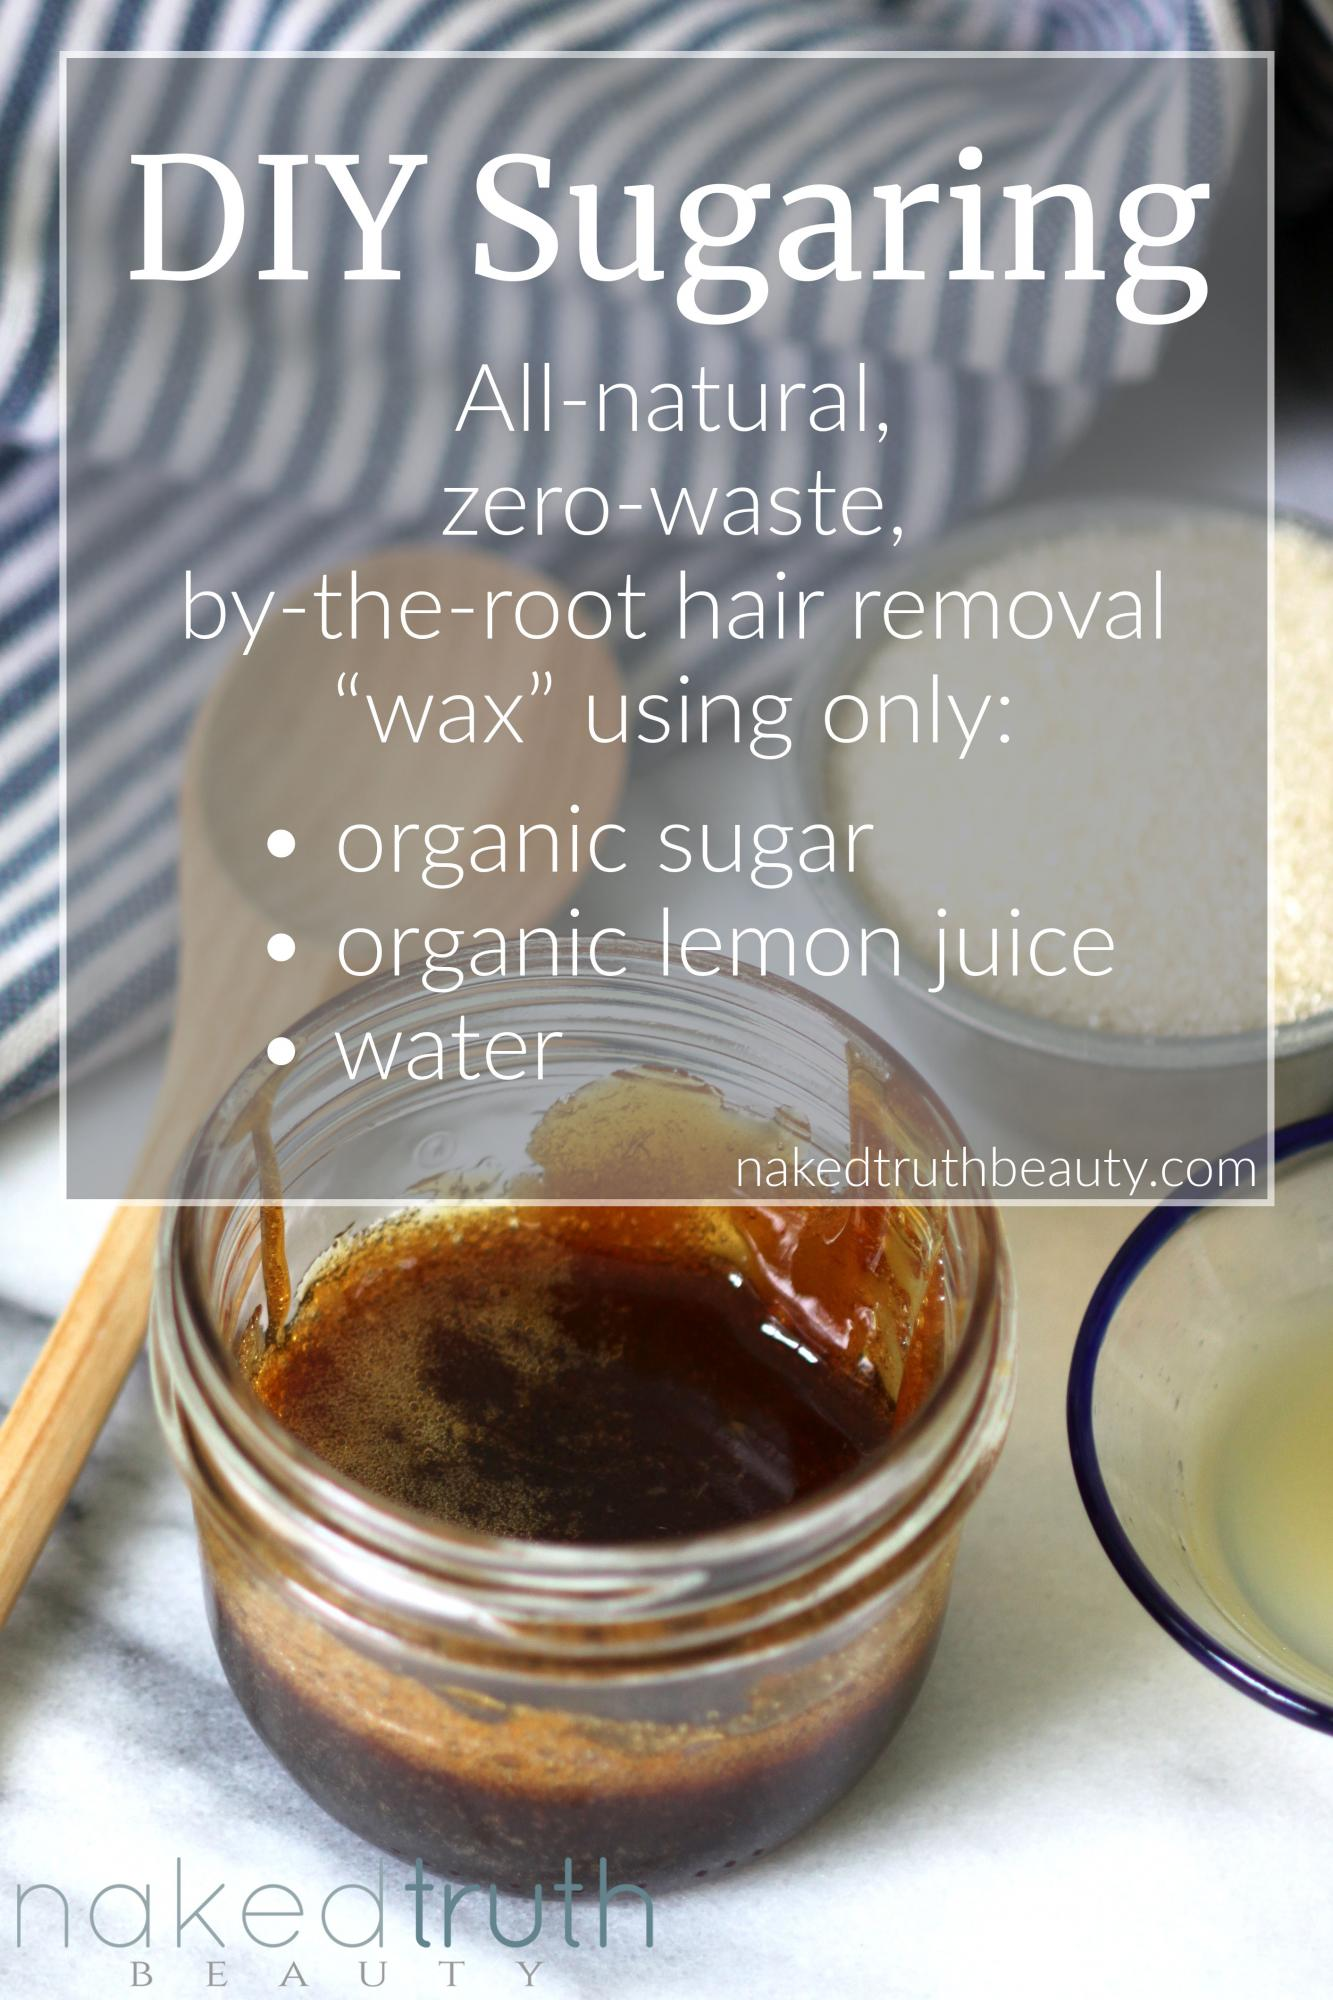 DIY sugaring wax for all natural, zero waste, easy, at home, by the root hair removal. How to make and use sugaring wax.